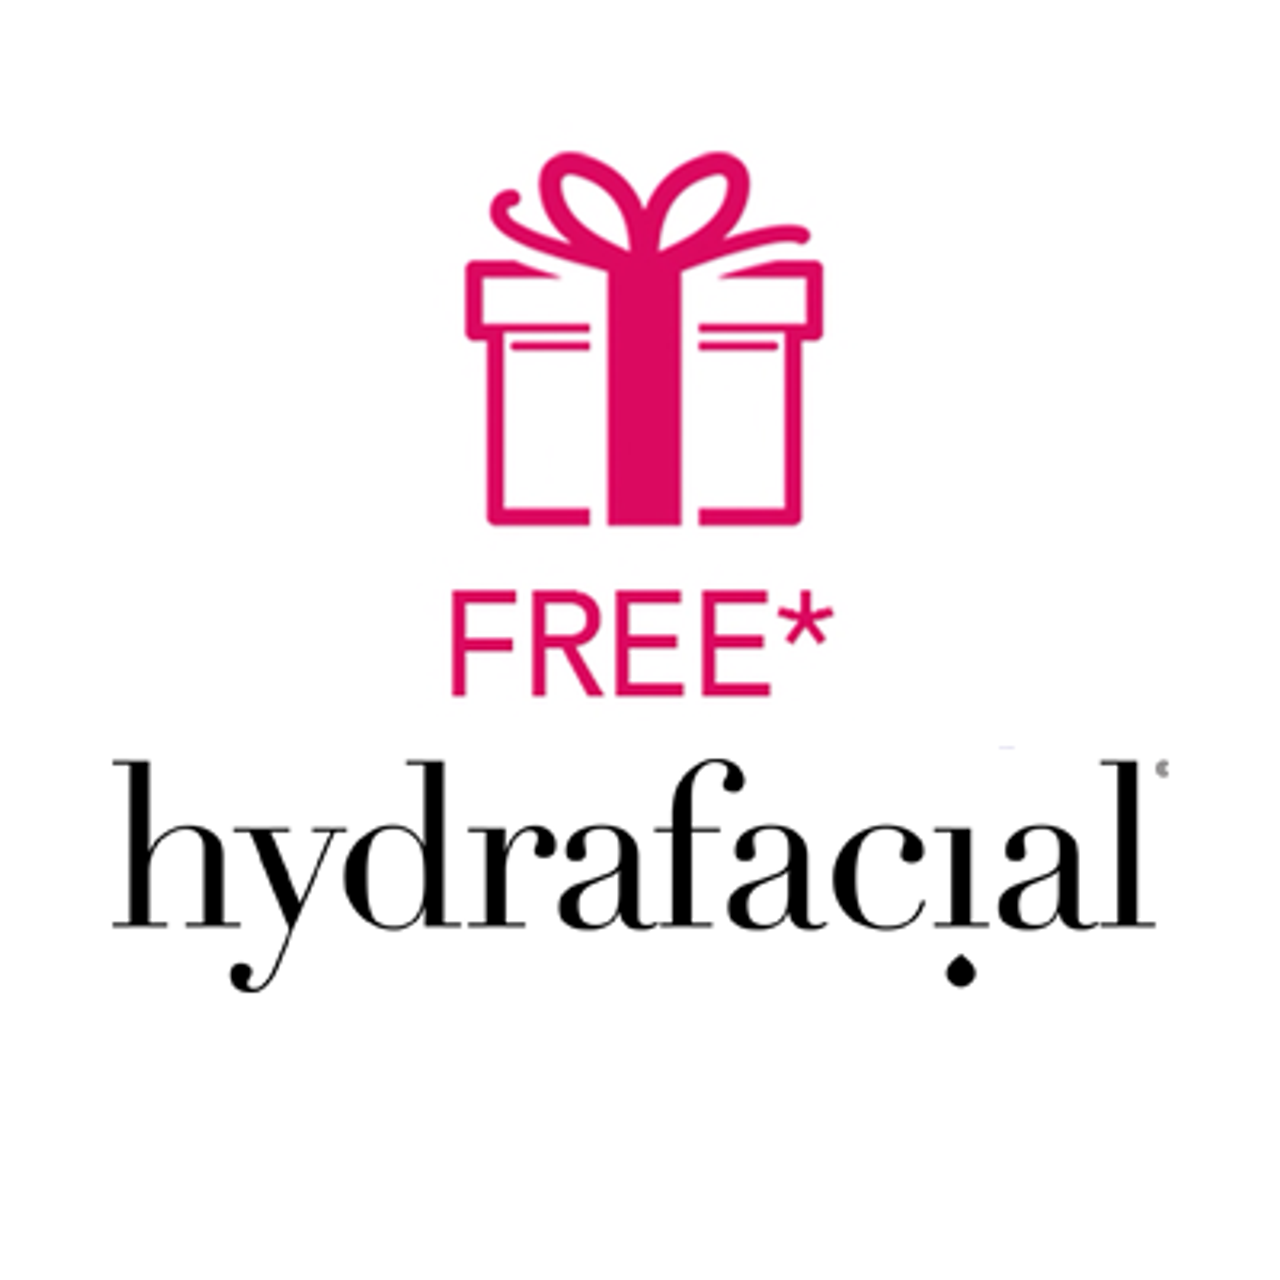 FREE* HydraFacial or Peel With Package Purchase